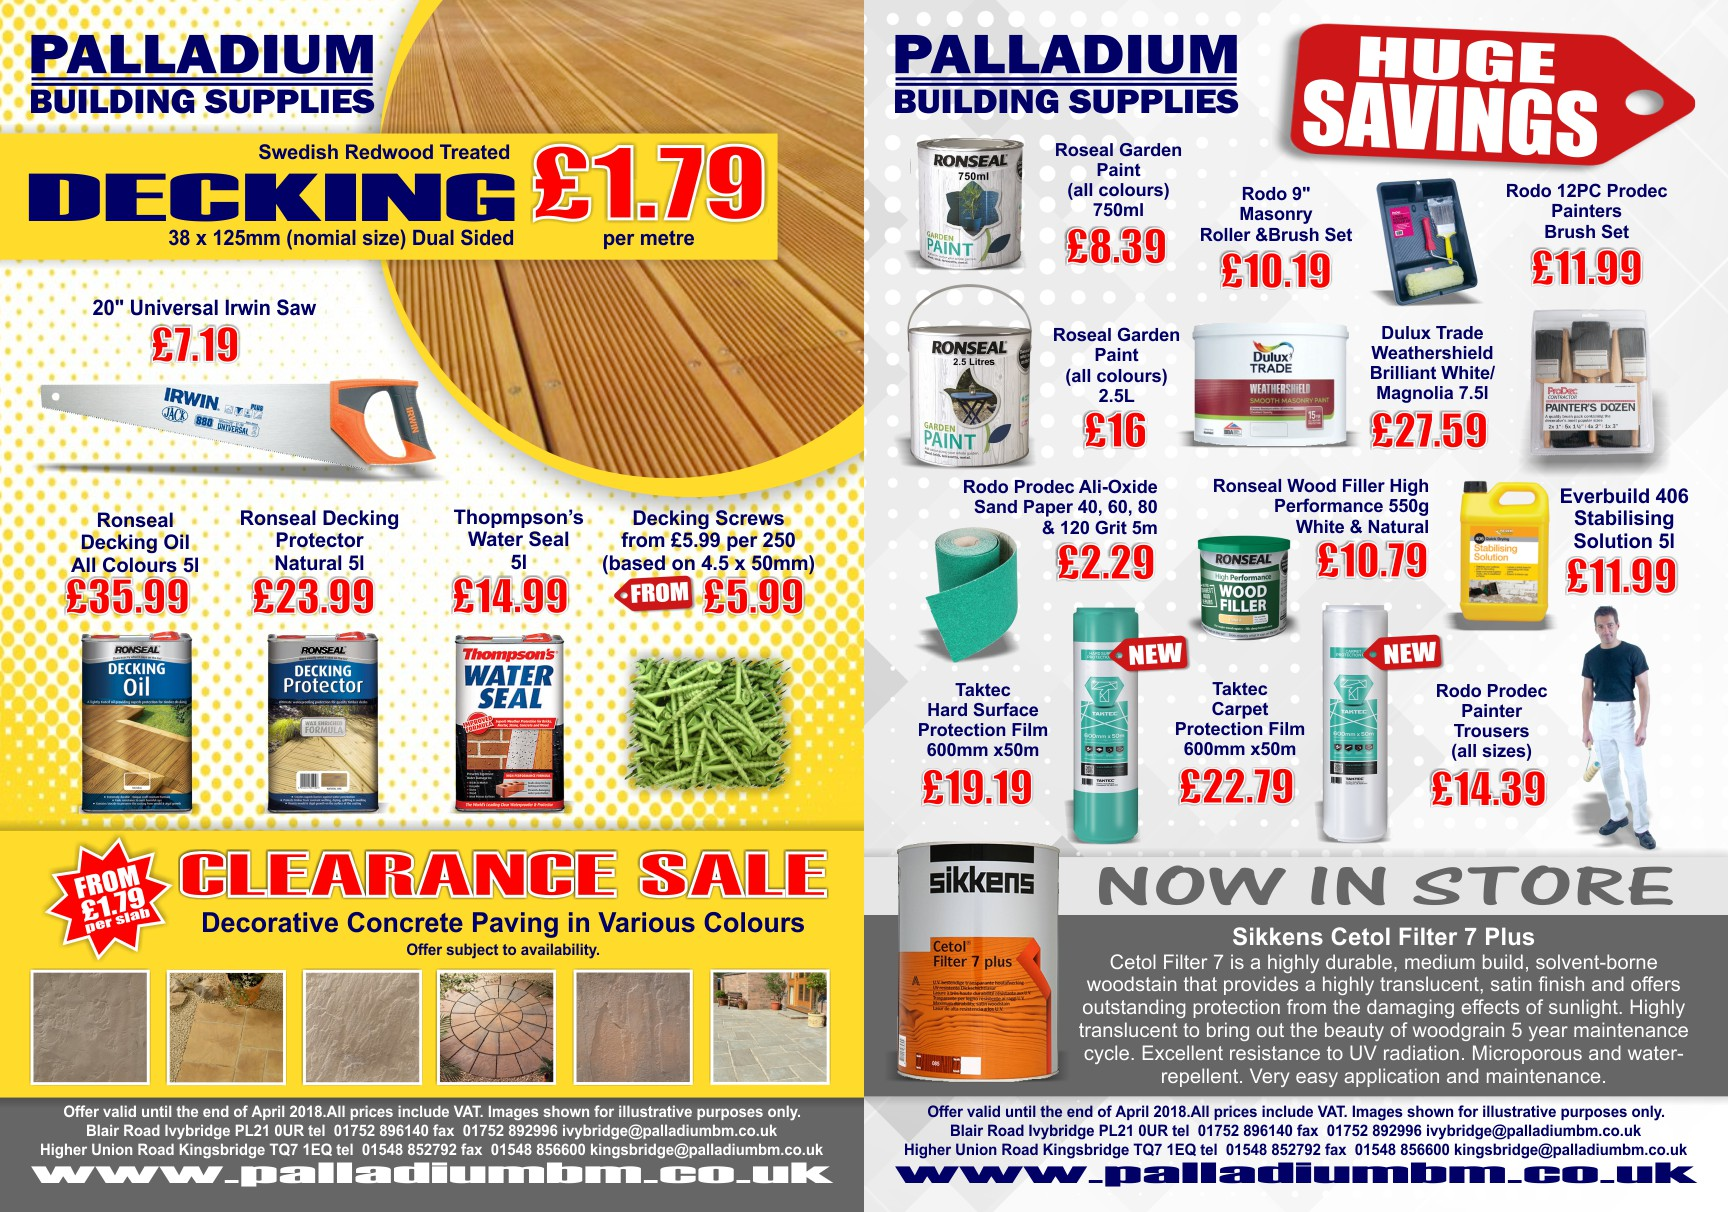 Feb, March & April Offer